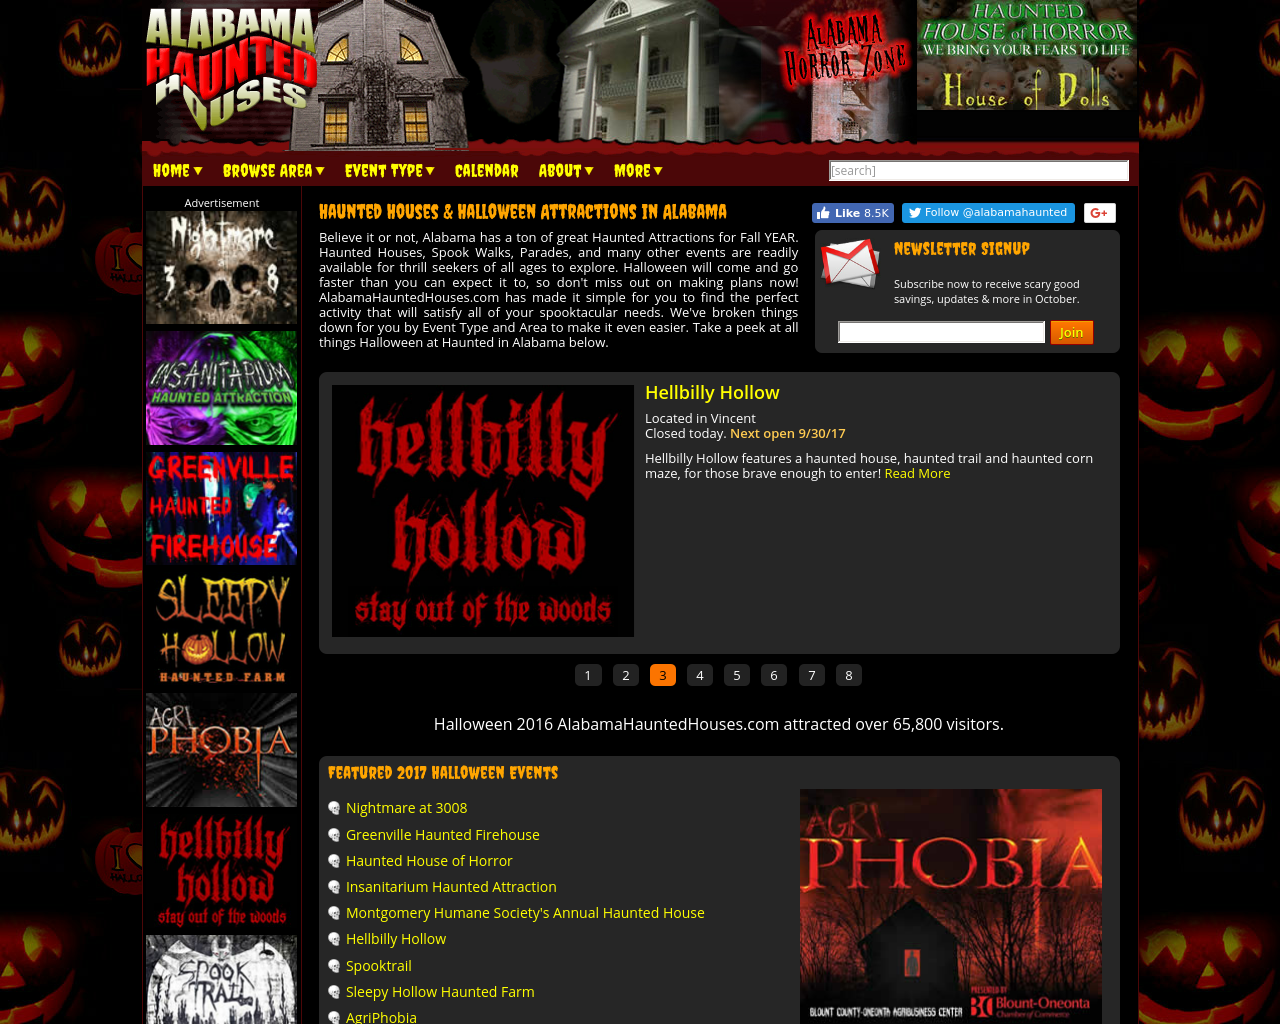 Alabama-Haunted-Houses-Advertising-Reviews-Pricing